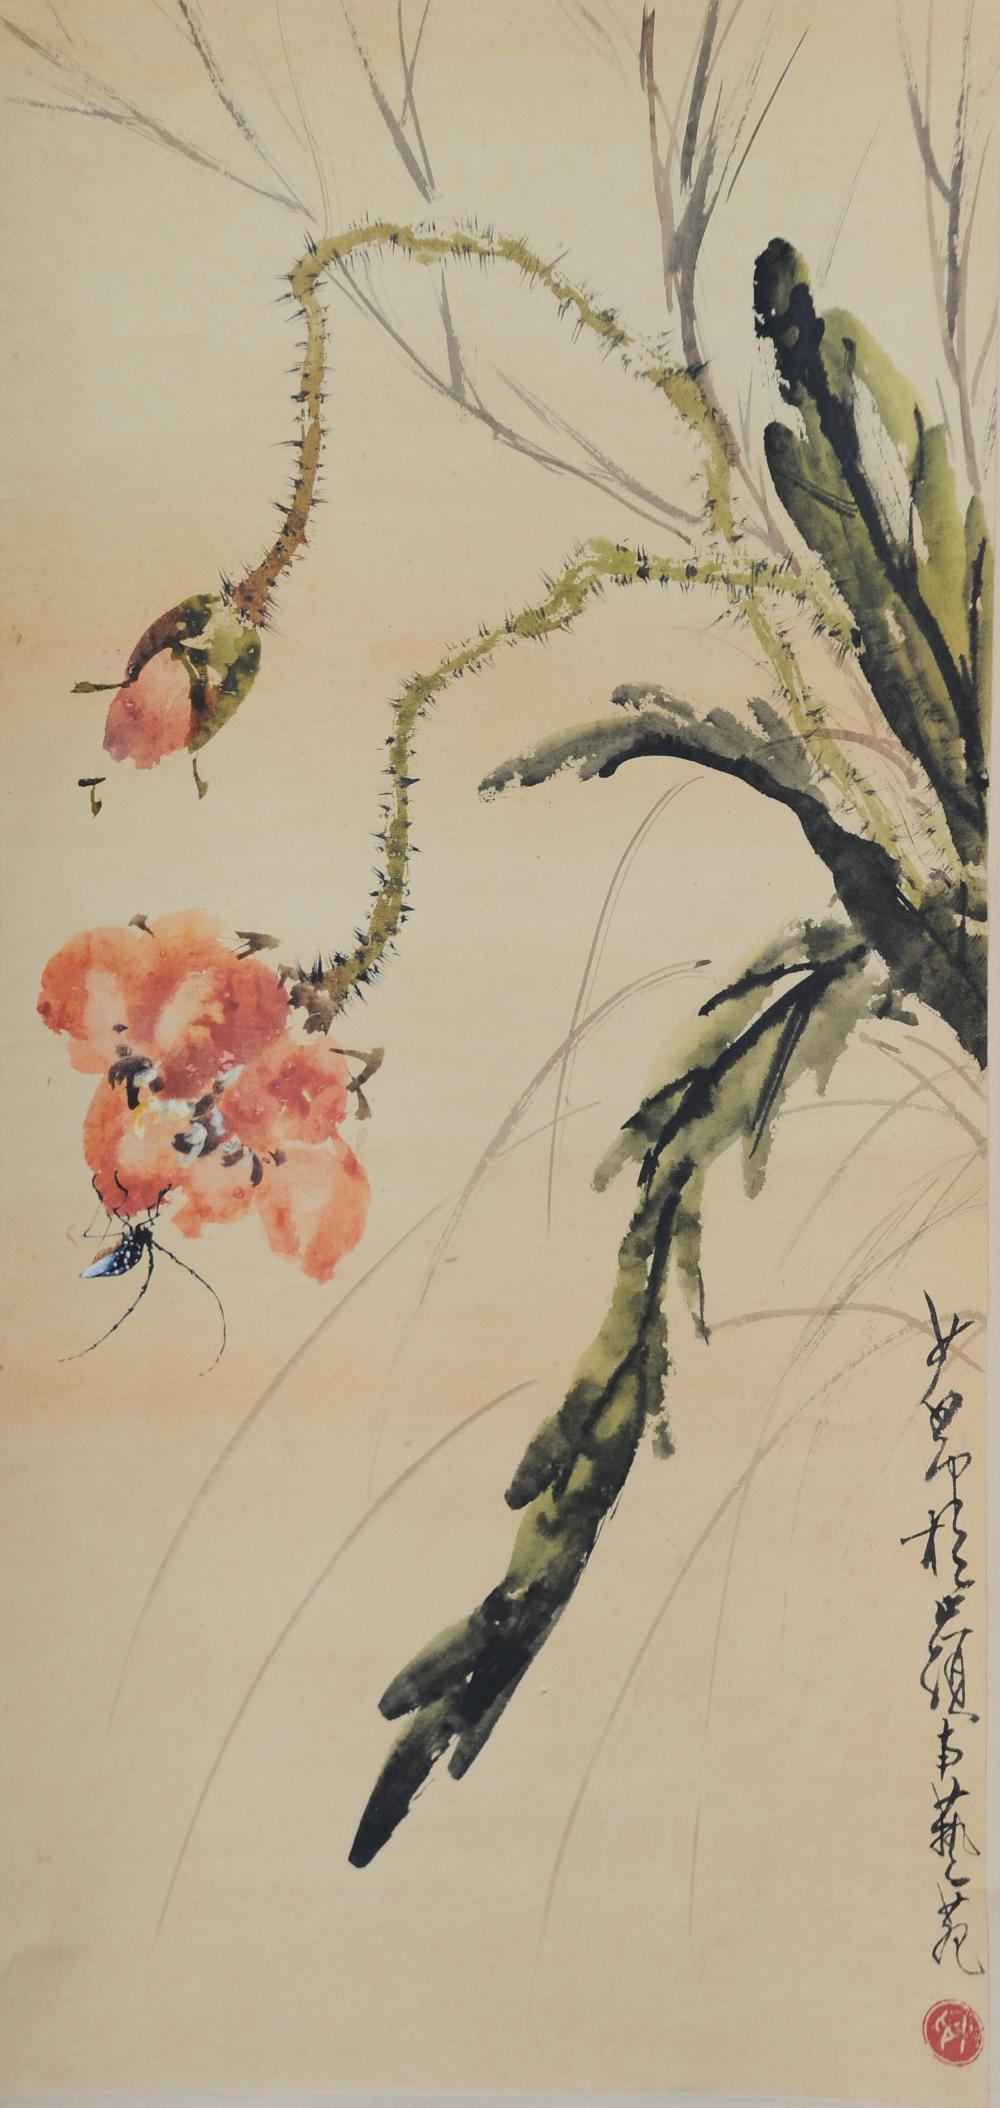 SCROLL PAINTING OF FLOWERS & INSECT, ZHAO SHAOANG